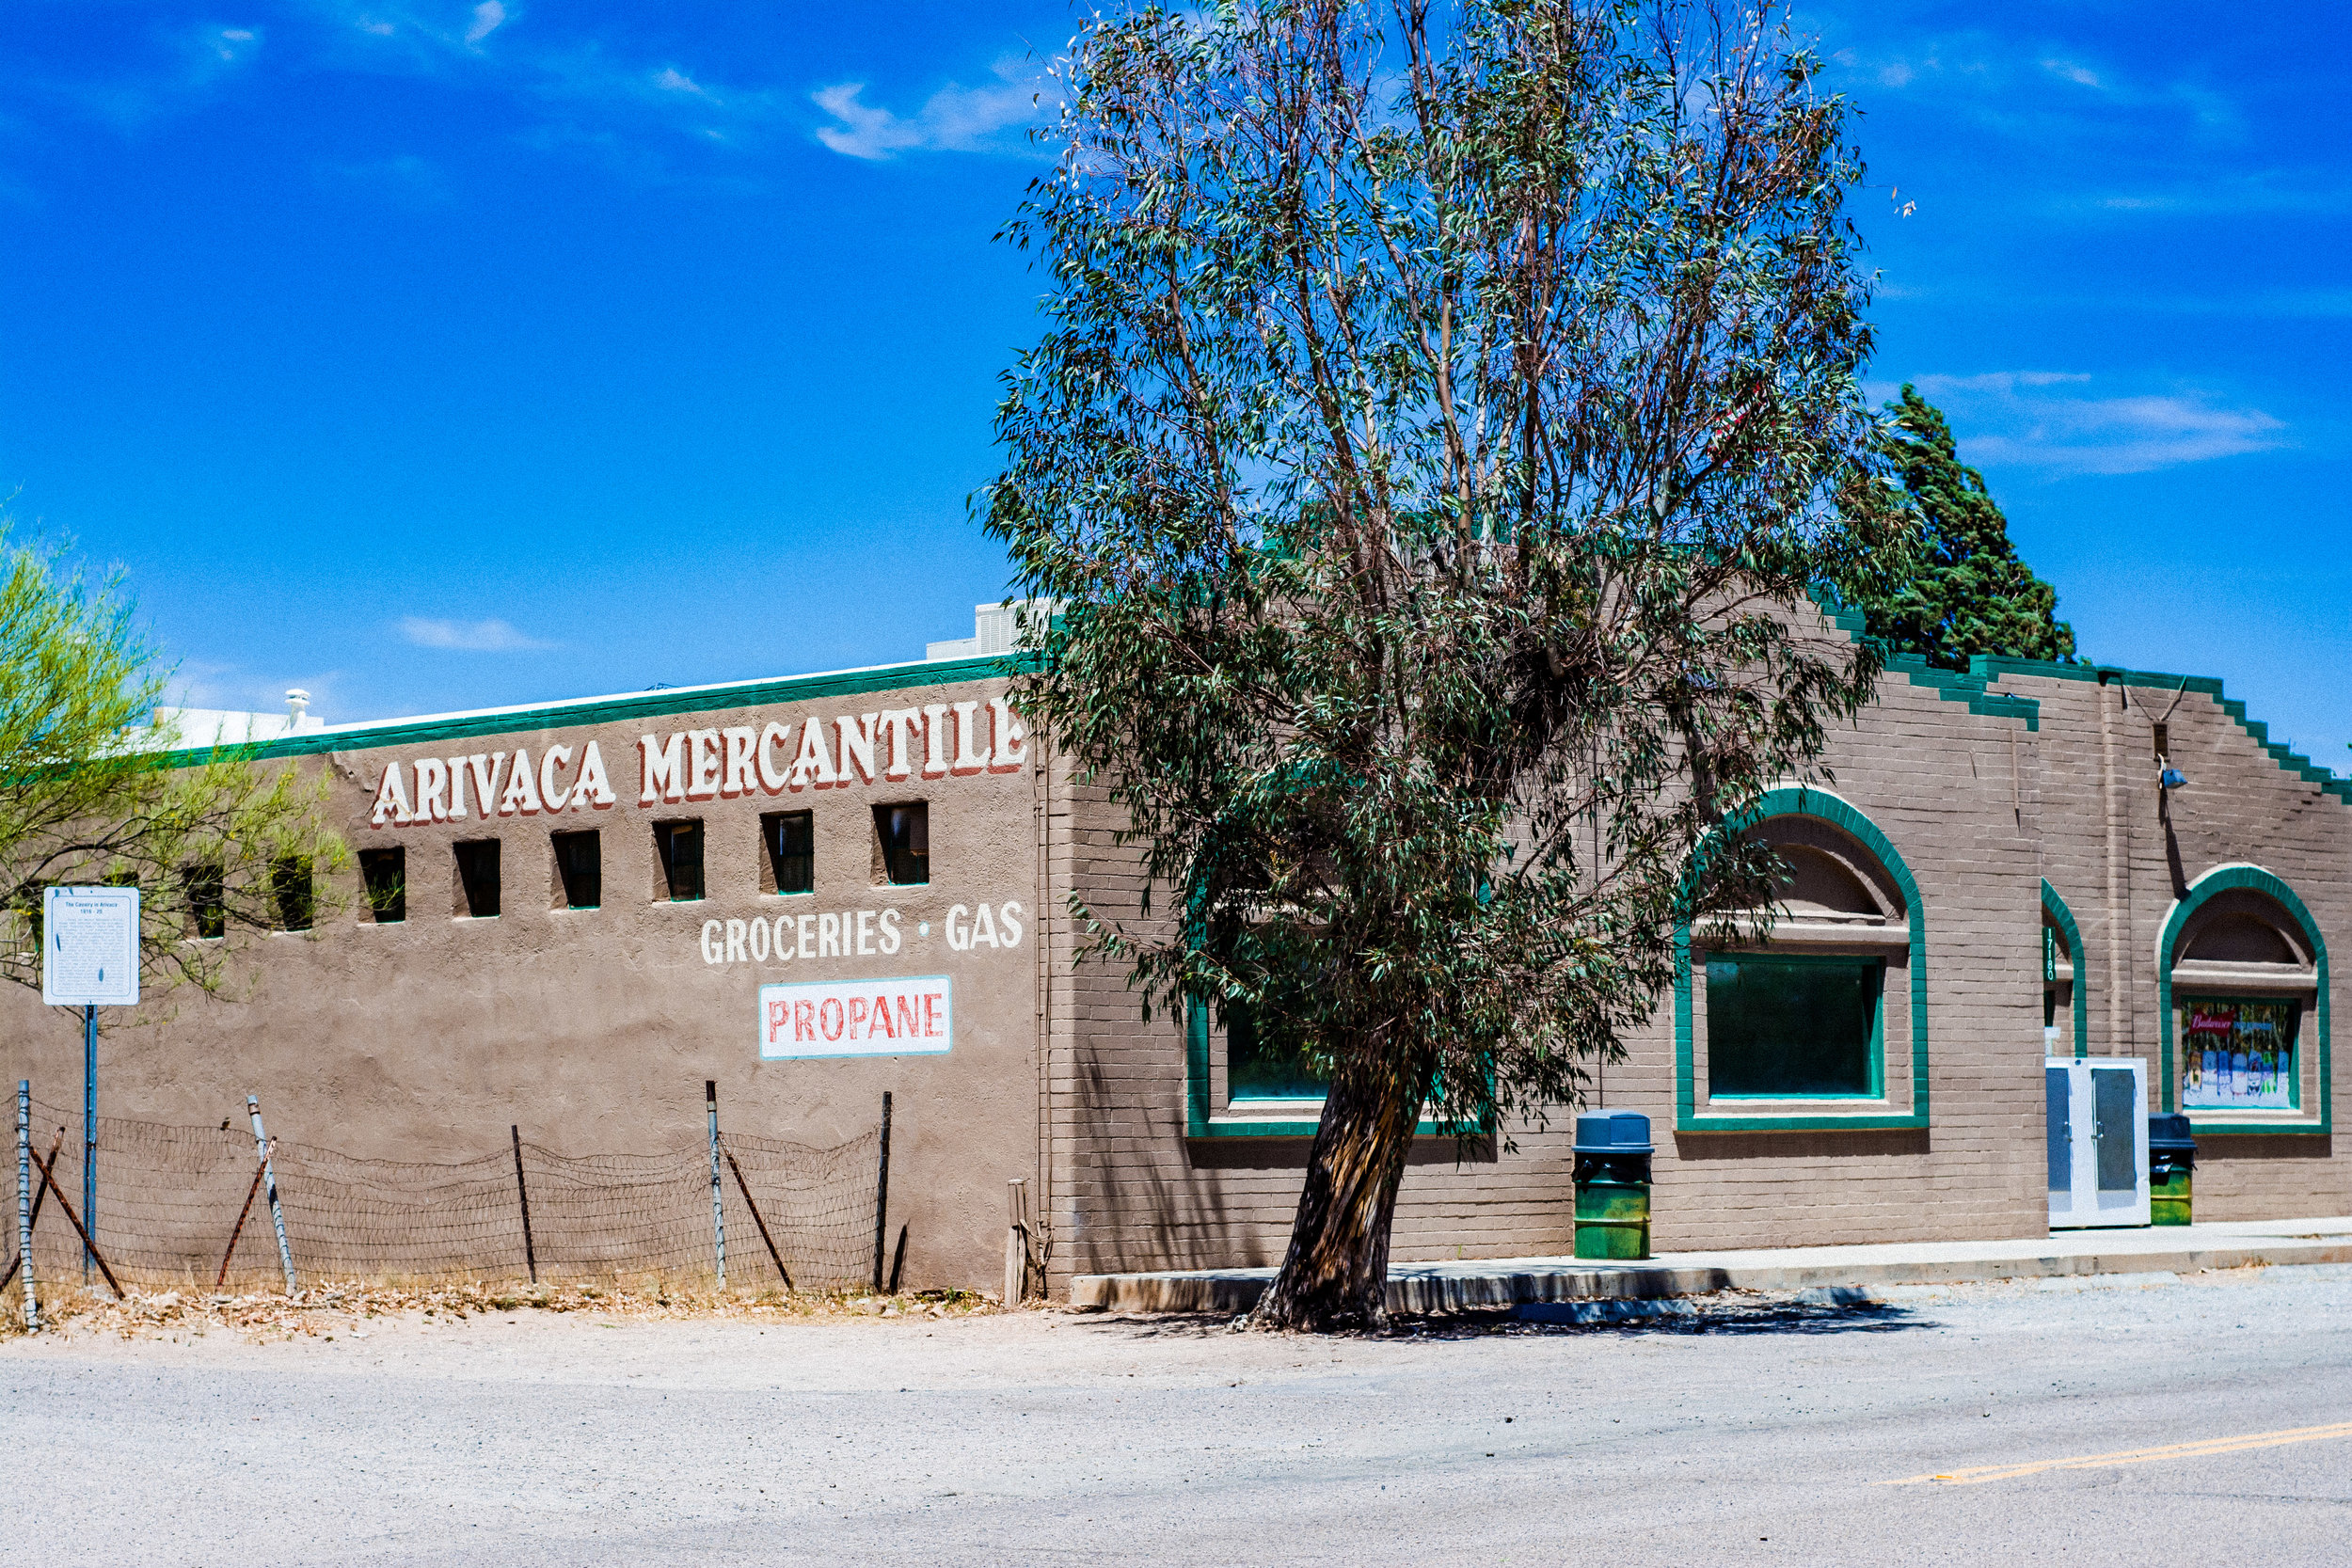 Arivaca Mercantile - 17180 W Arivaca RdArivaca, AZ 85601(520) 398-2702Open 7 DaysSunday 8AM–6PMMonday- Friday 7AM–7PM